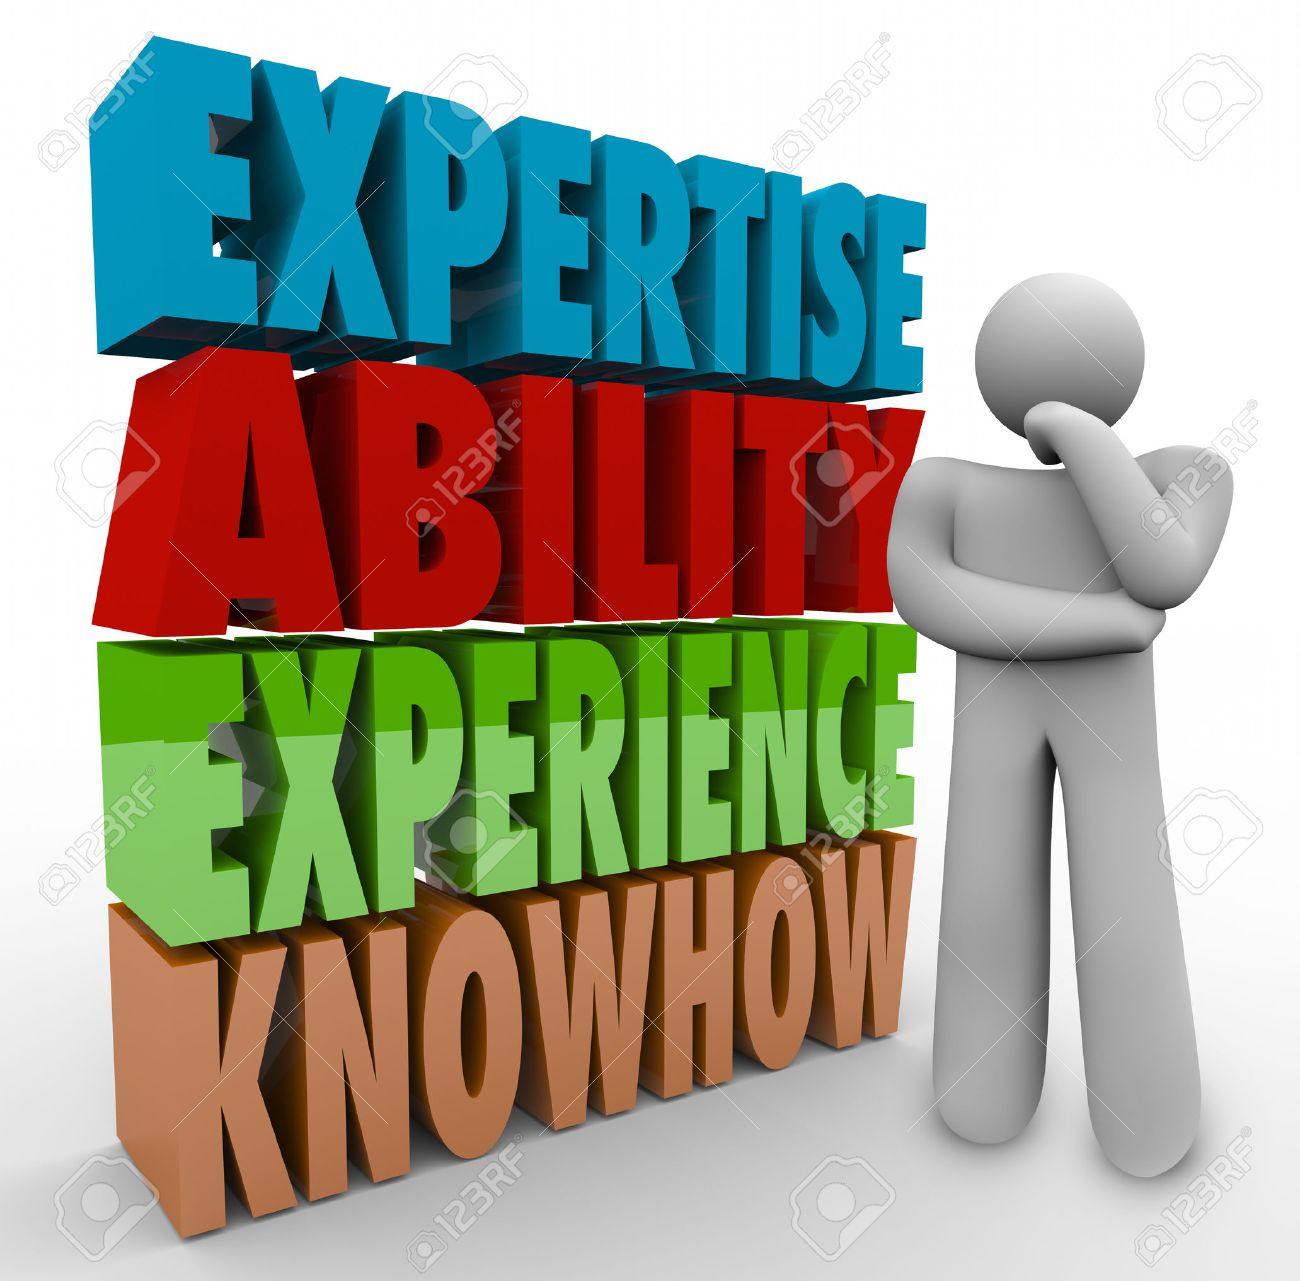 expertise ability experience and knowhow words and thinker expertise ability experience and knowhow words and thinker wondering about job or career criteria requirements